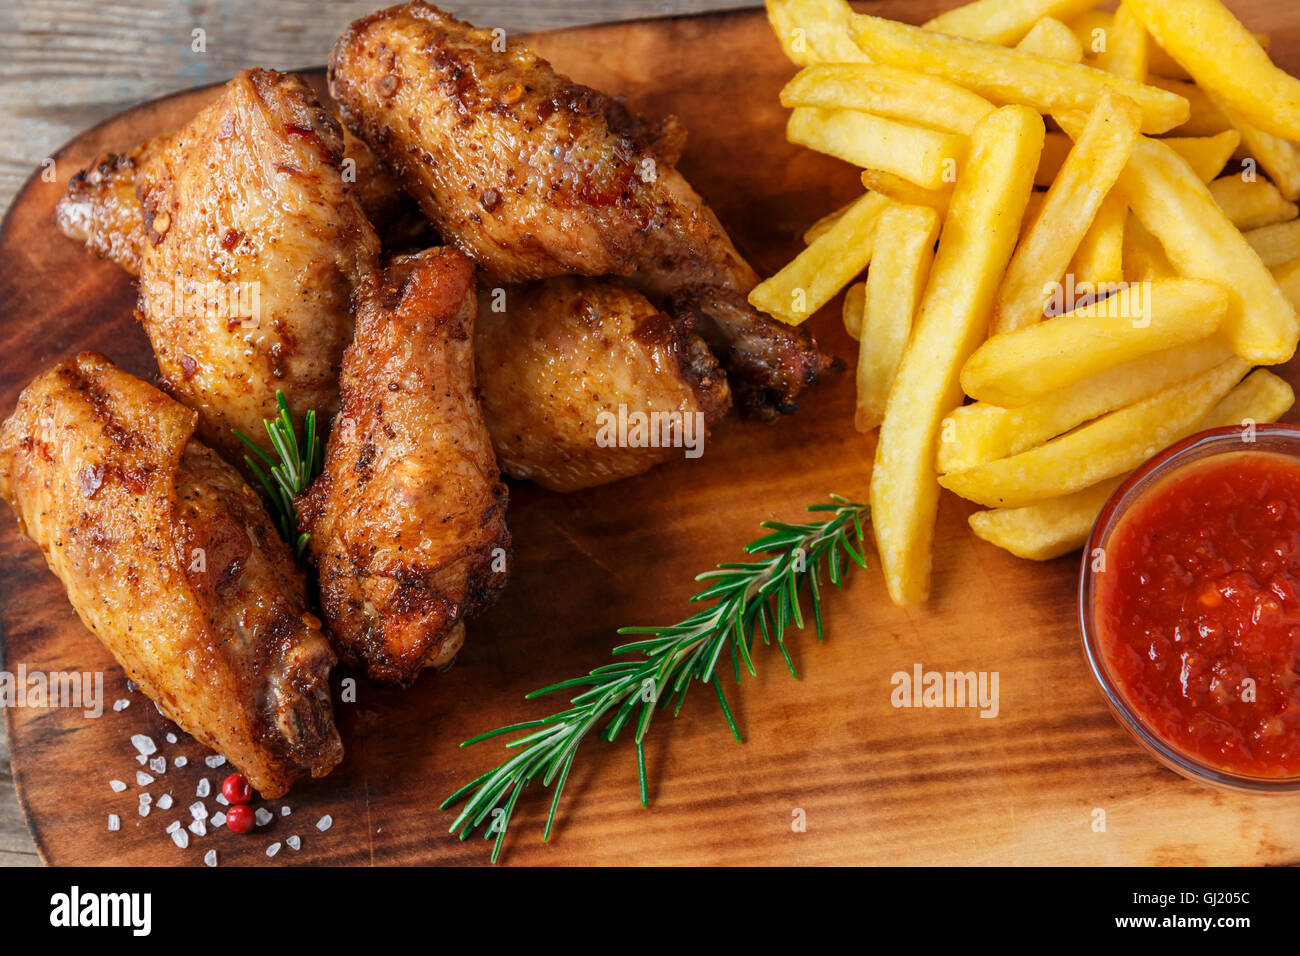 fried chicken wings french fries and sauce Stock Photo